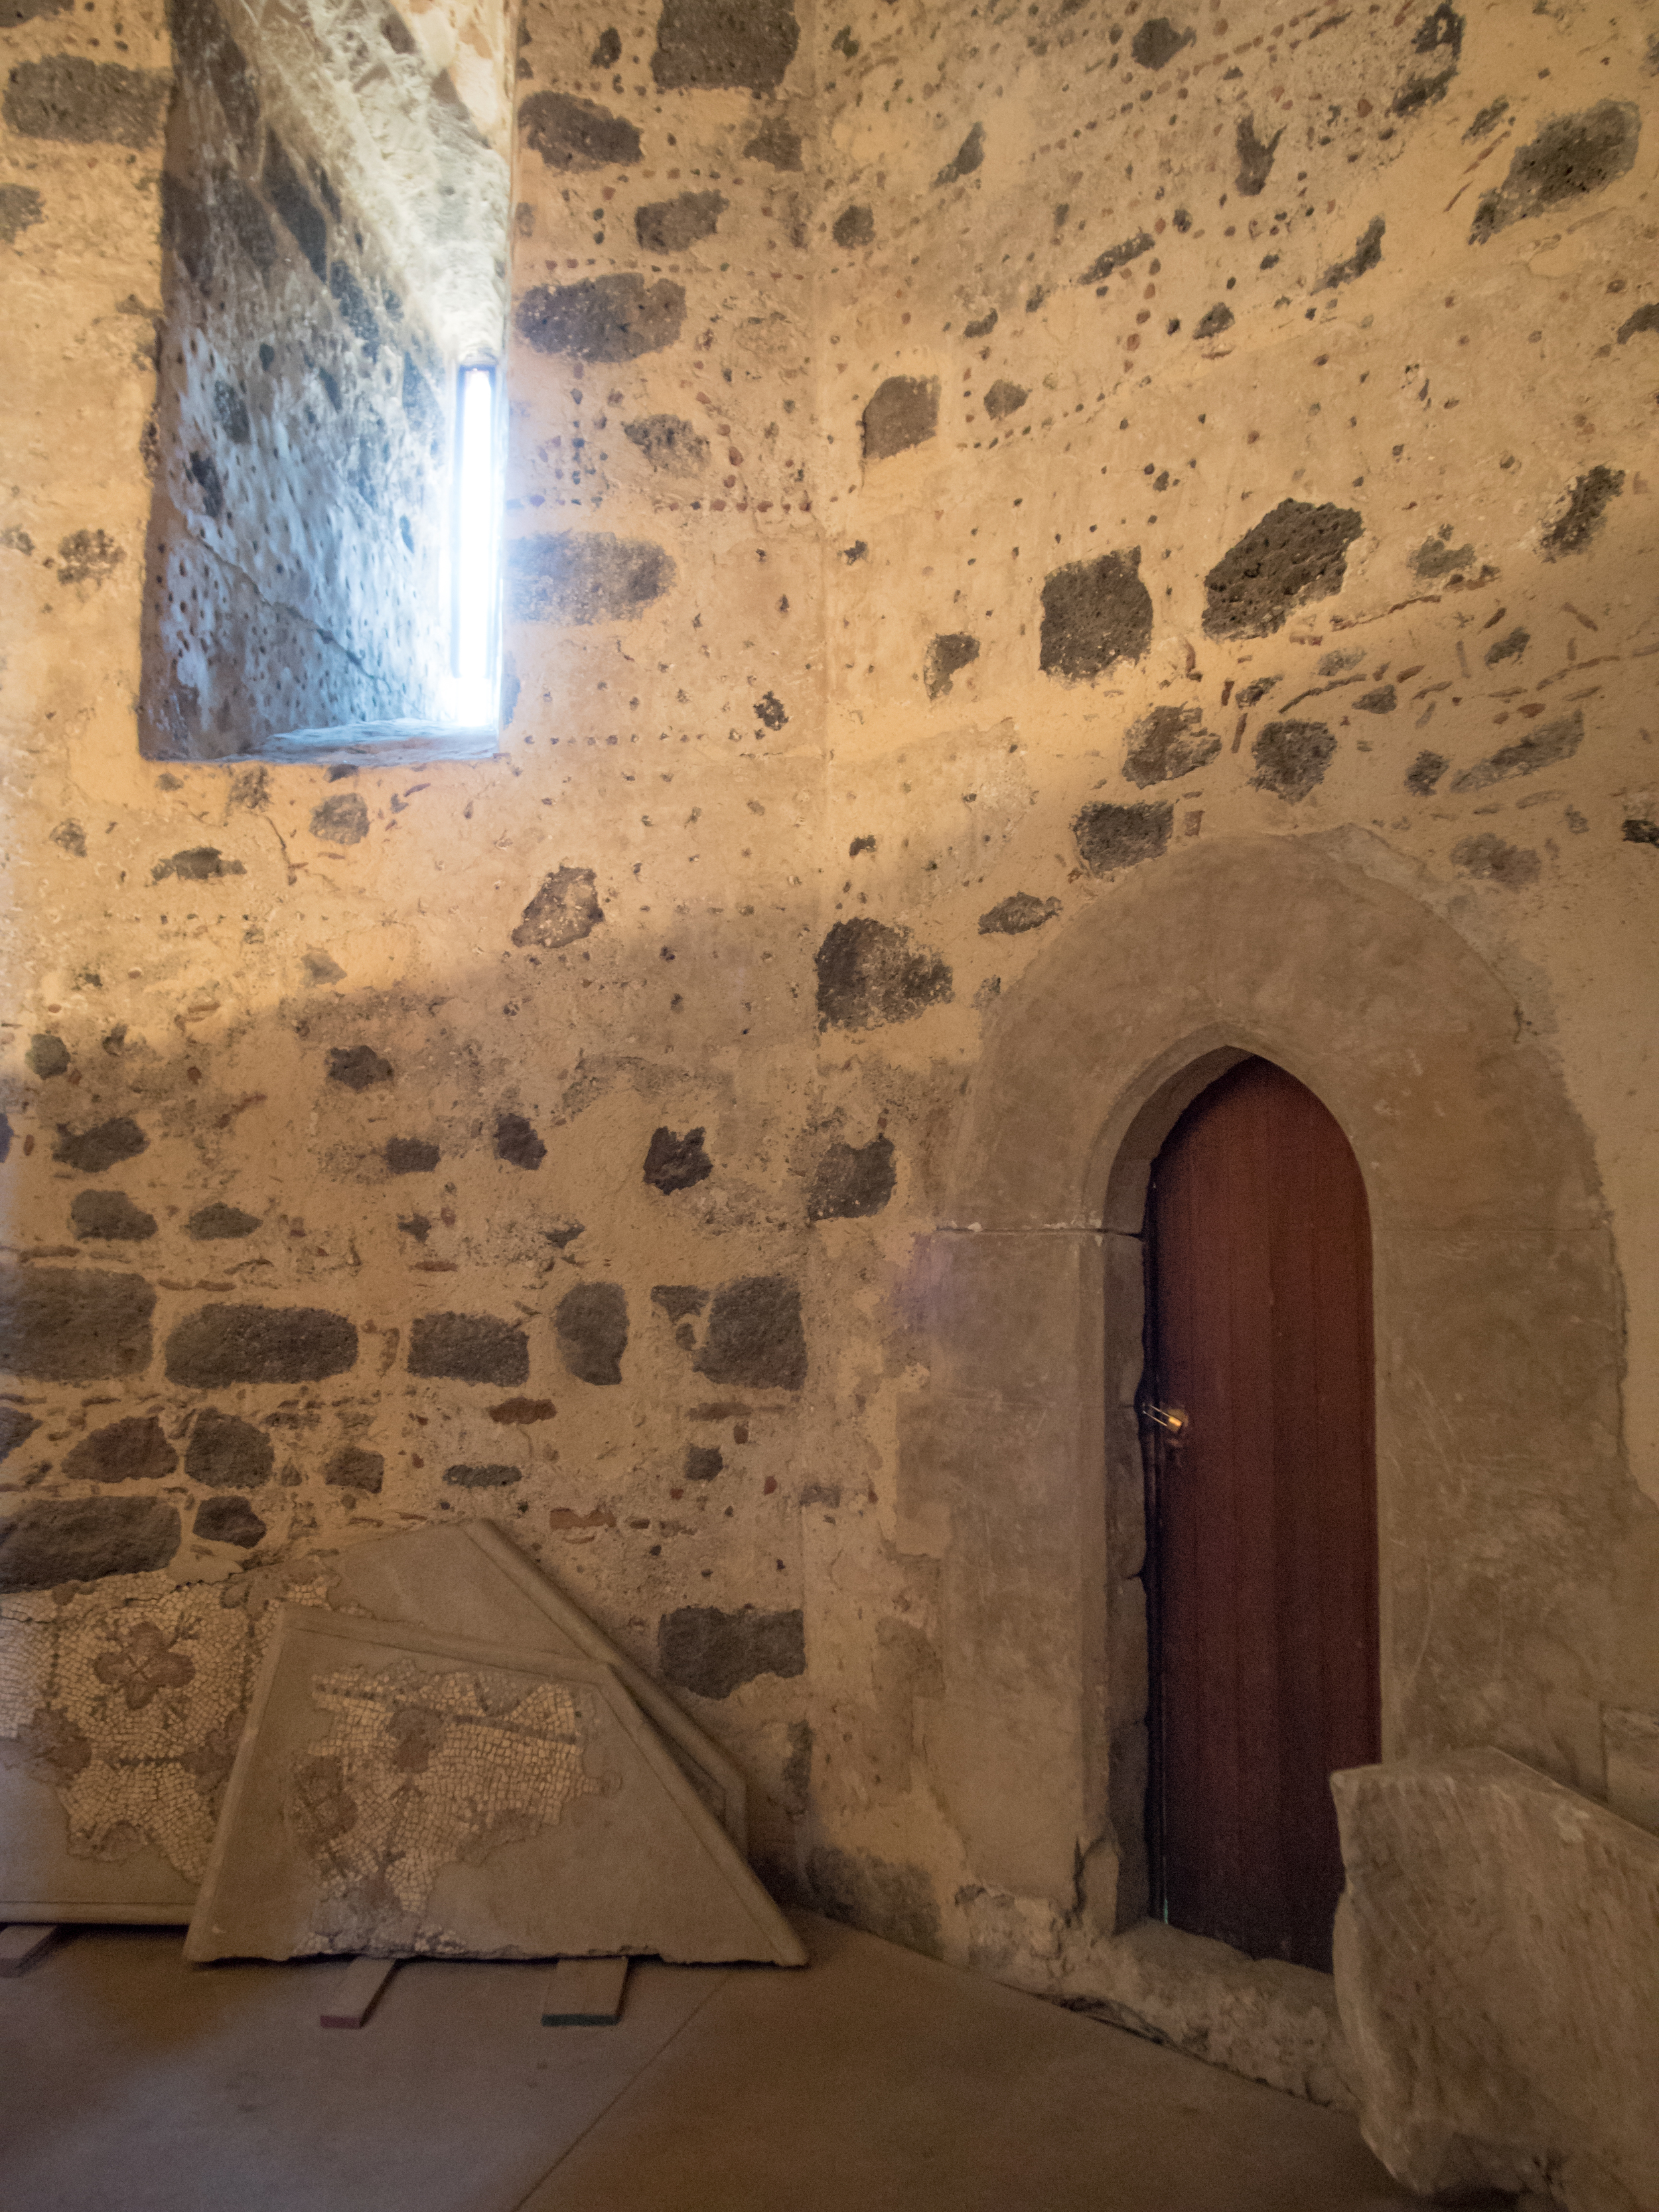 inside one of the old castle walls